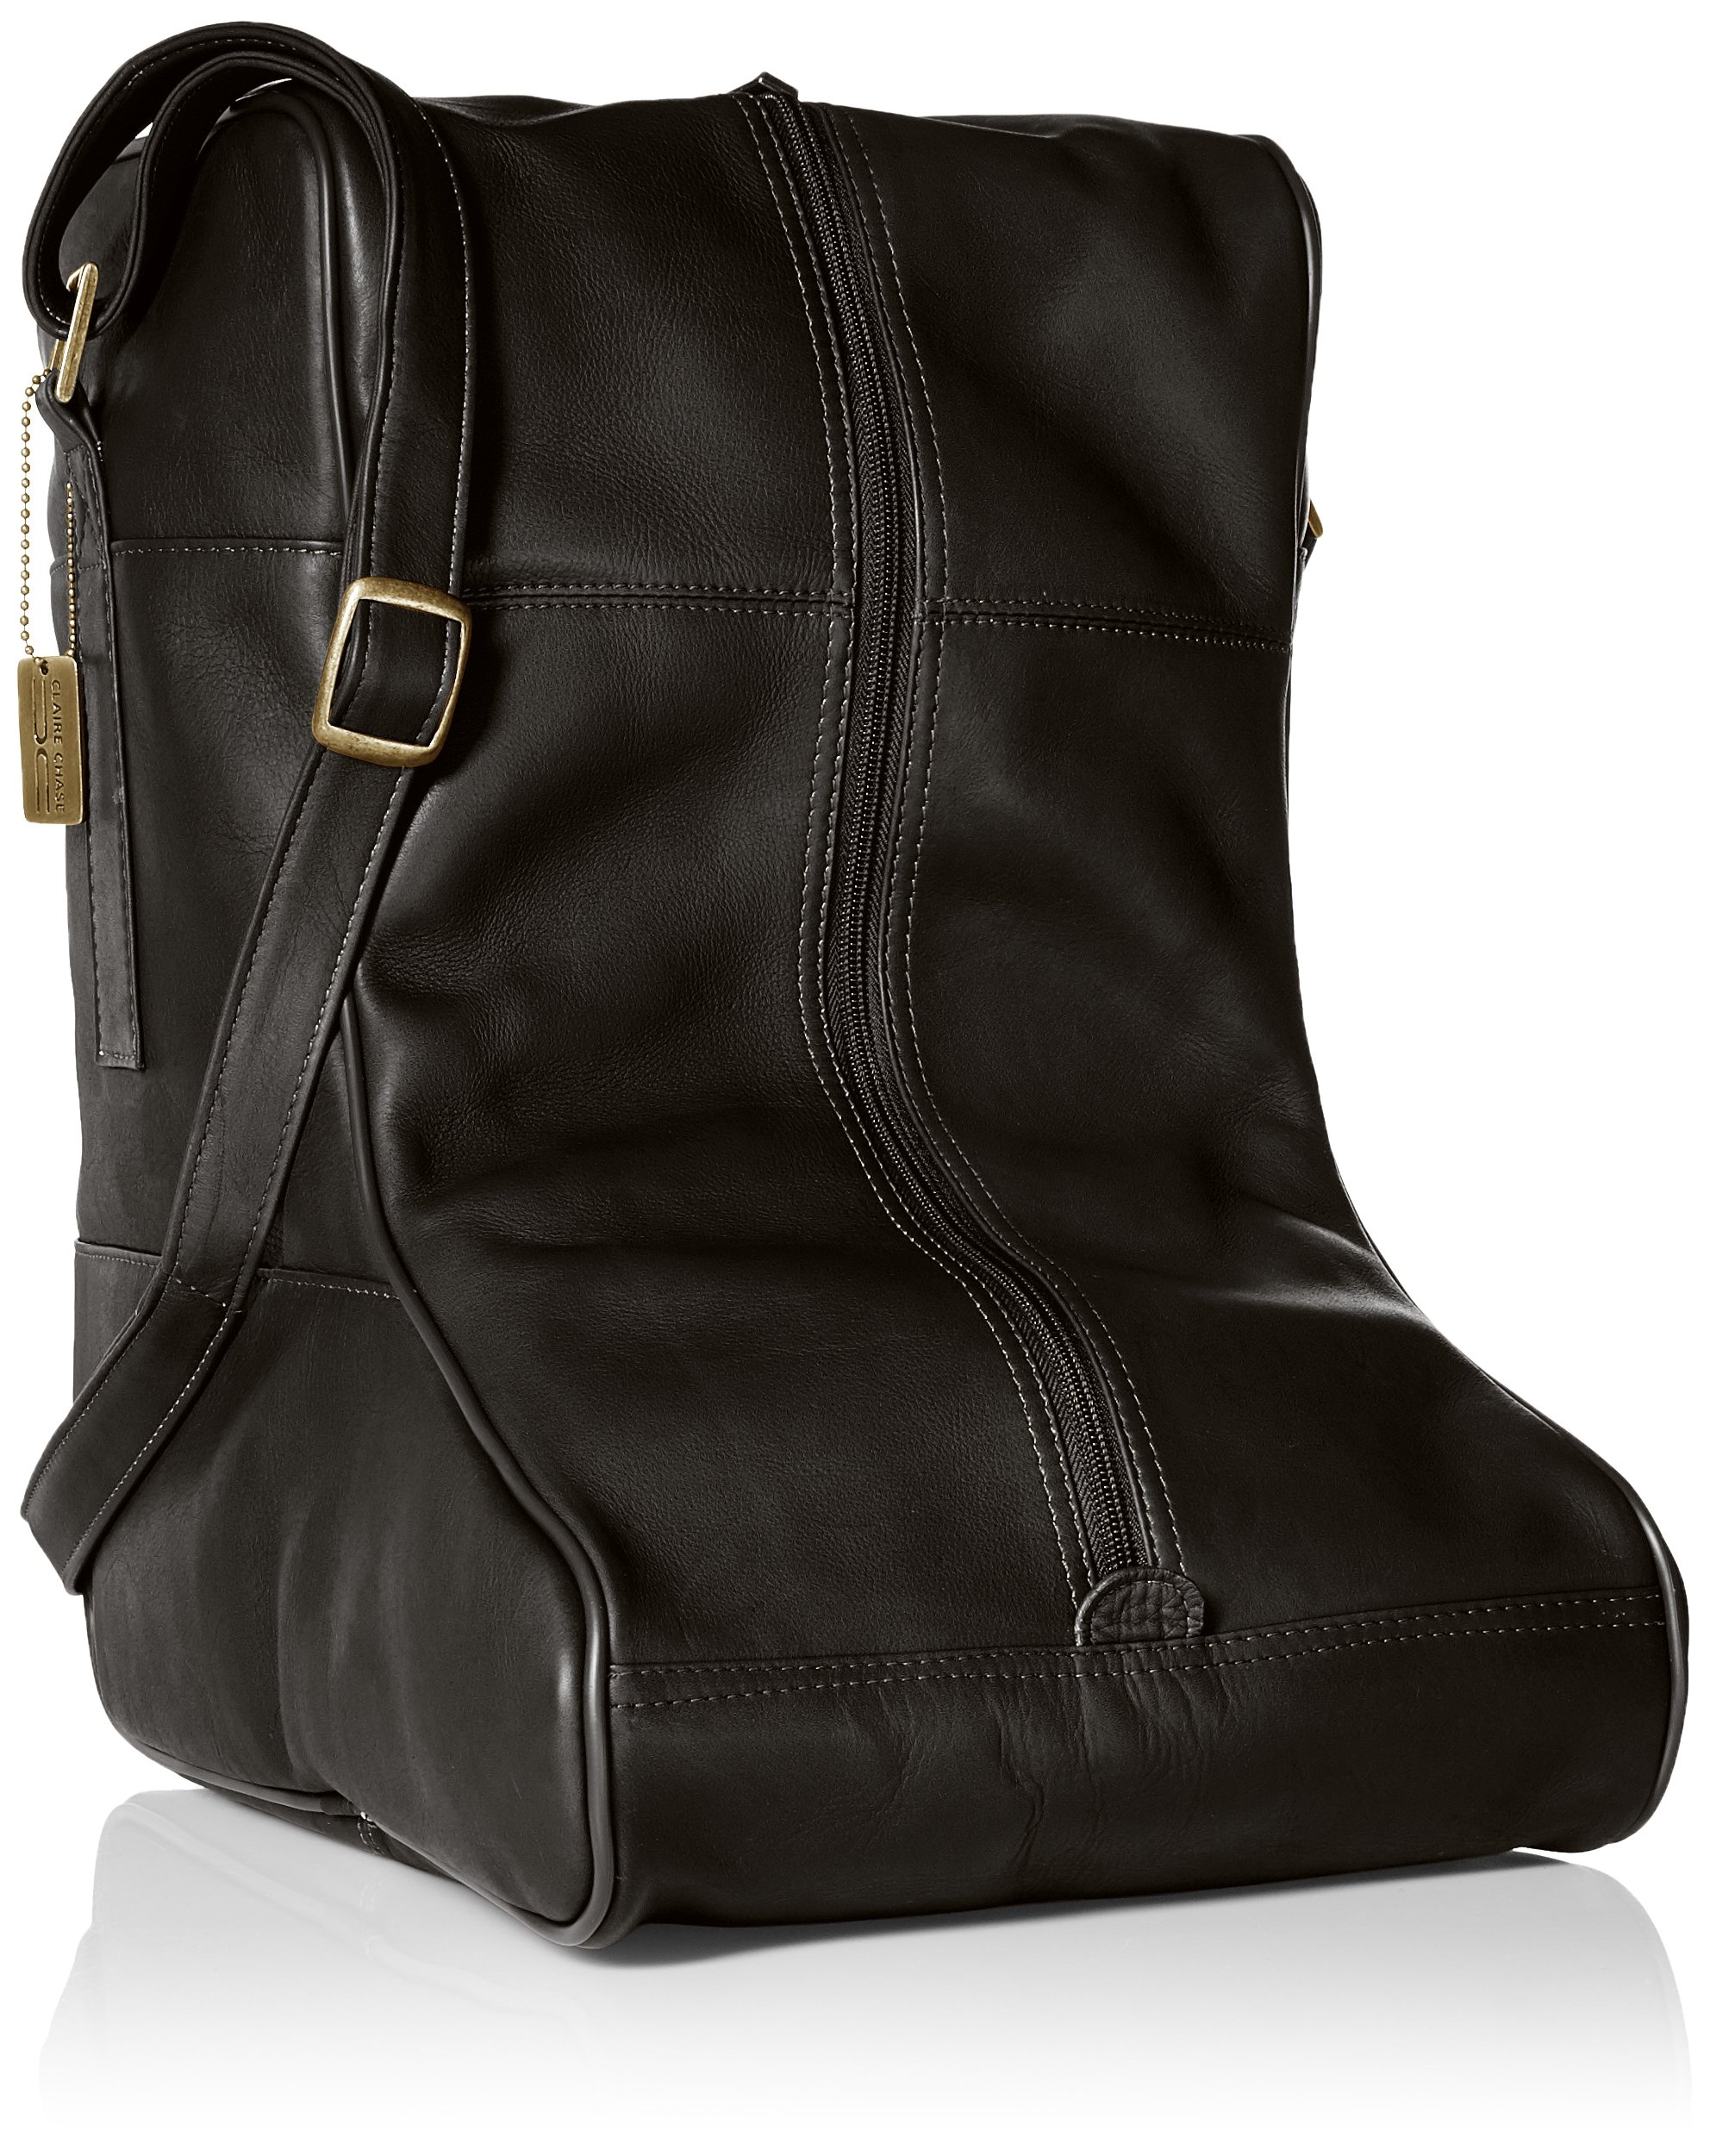 Claire Chase Ranchero Boot Bag, Black by ClaireChase